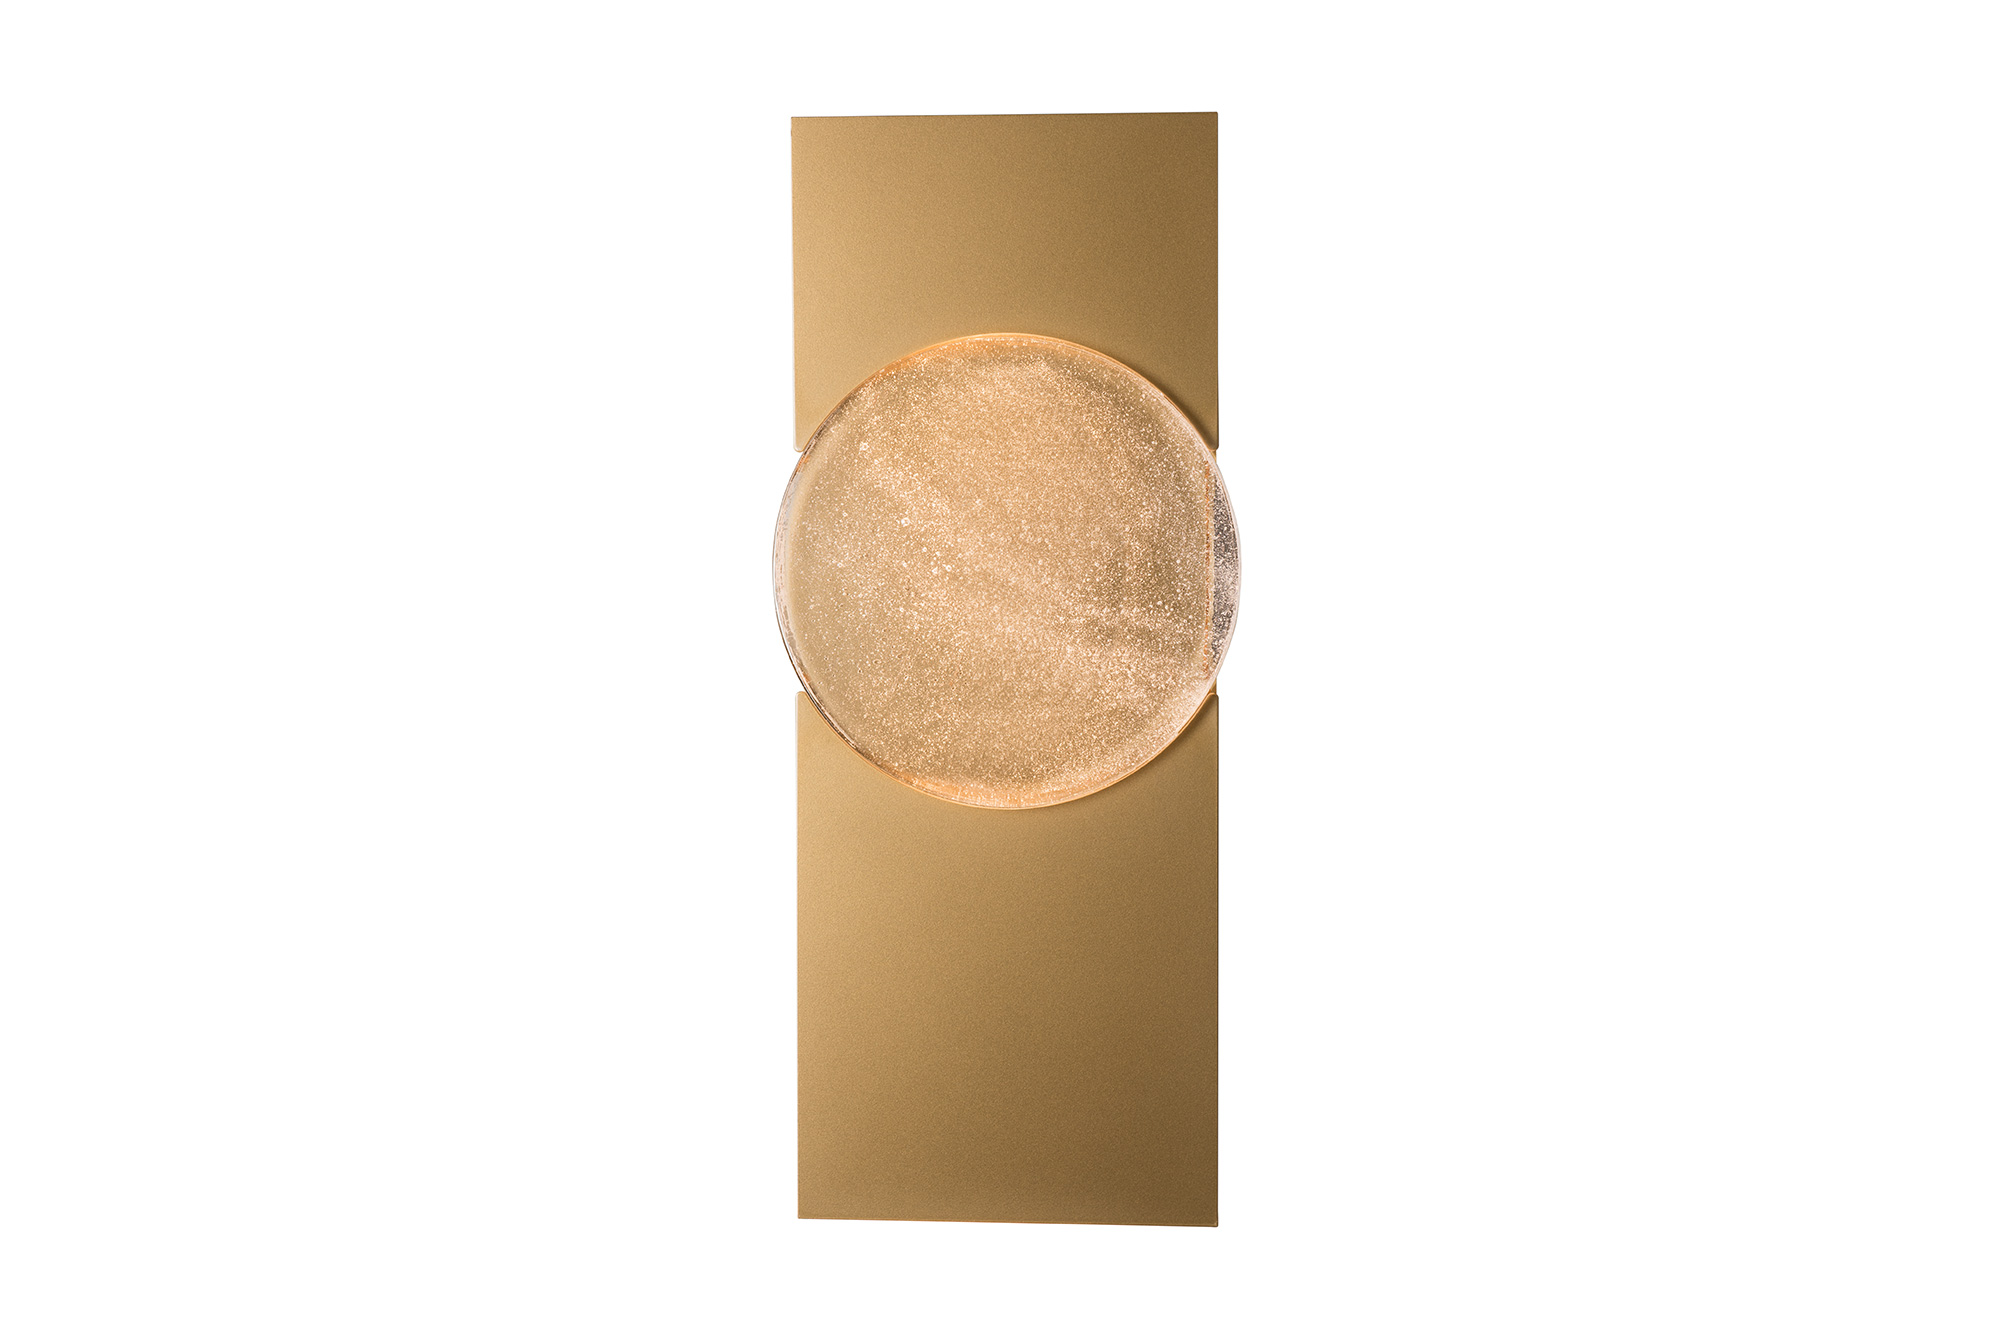 MOON OUTDOOR SCONCE – LARGE GOLD FINISH